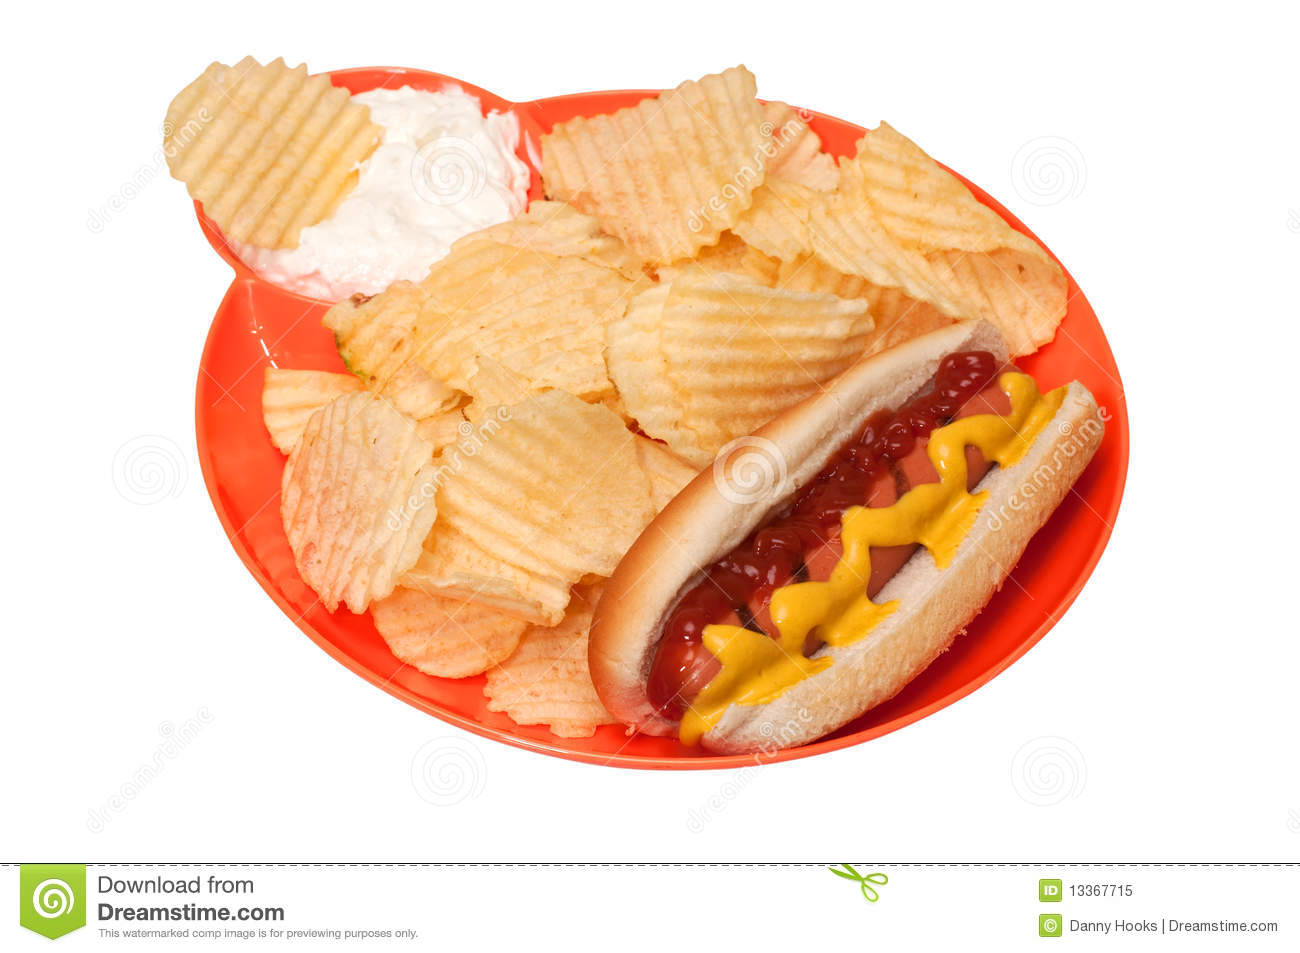 Hotdog And Chips Clipart Hot Dog with Potato Chips and